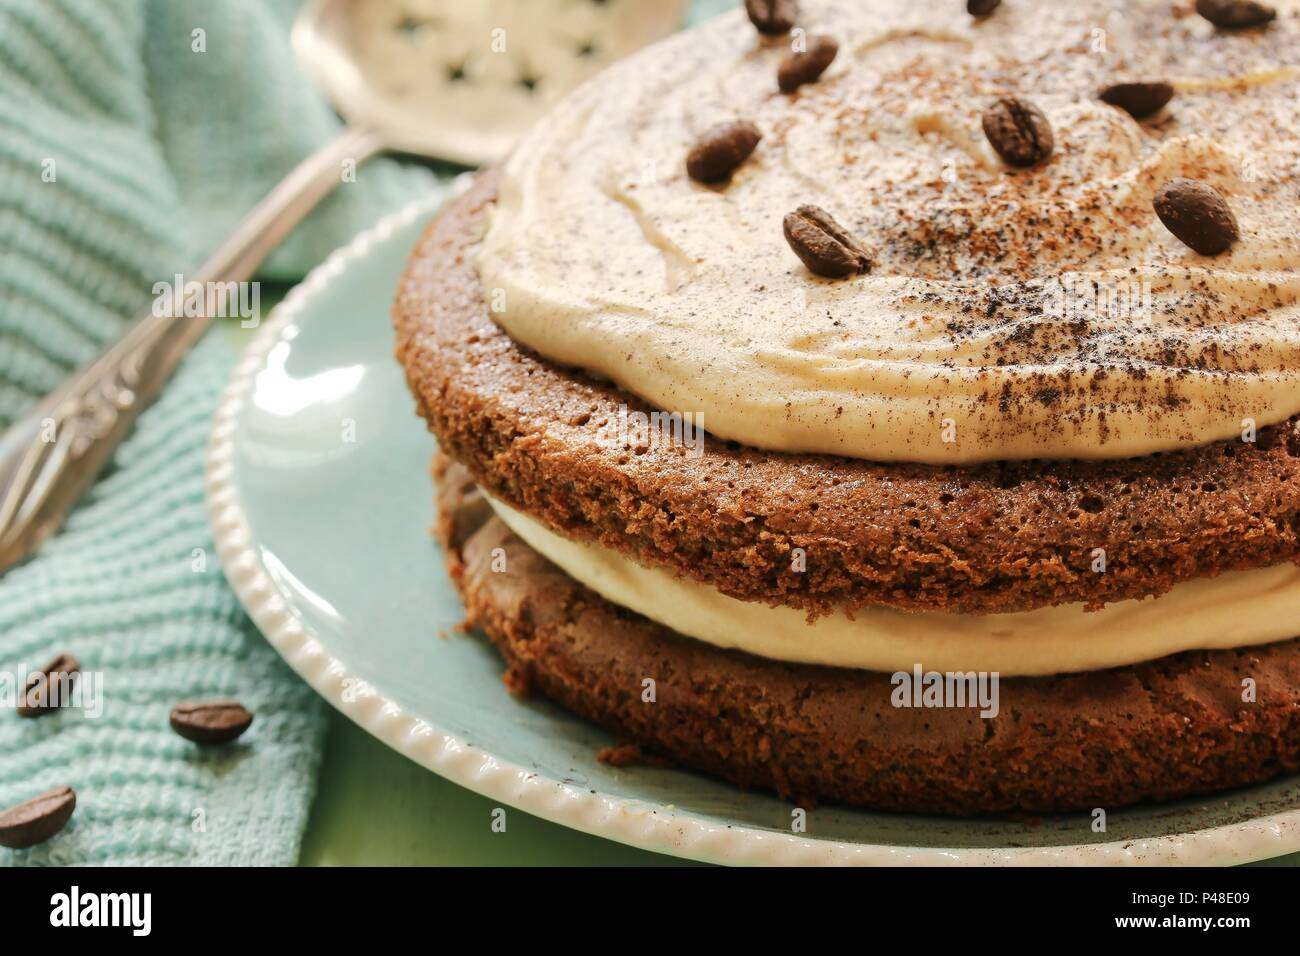 Homemade Coffee Expresso cake with white chocolate mocha frosting, close up selective focus